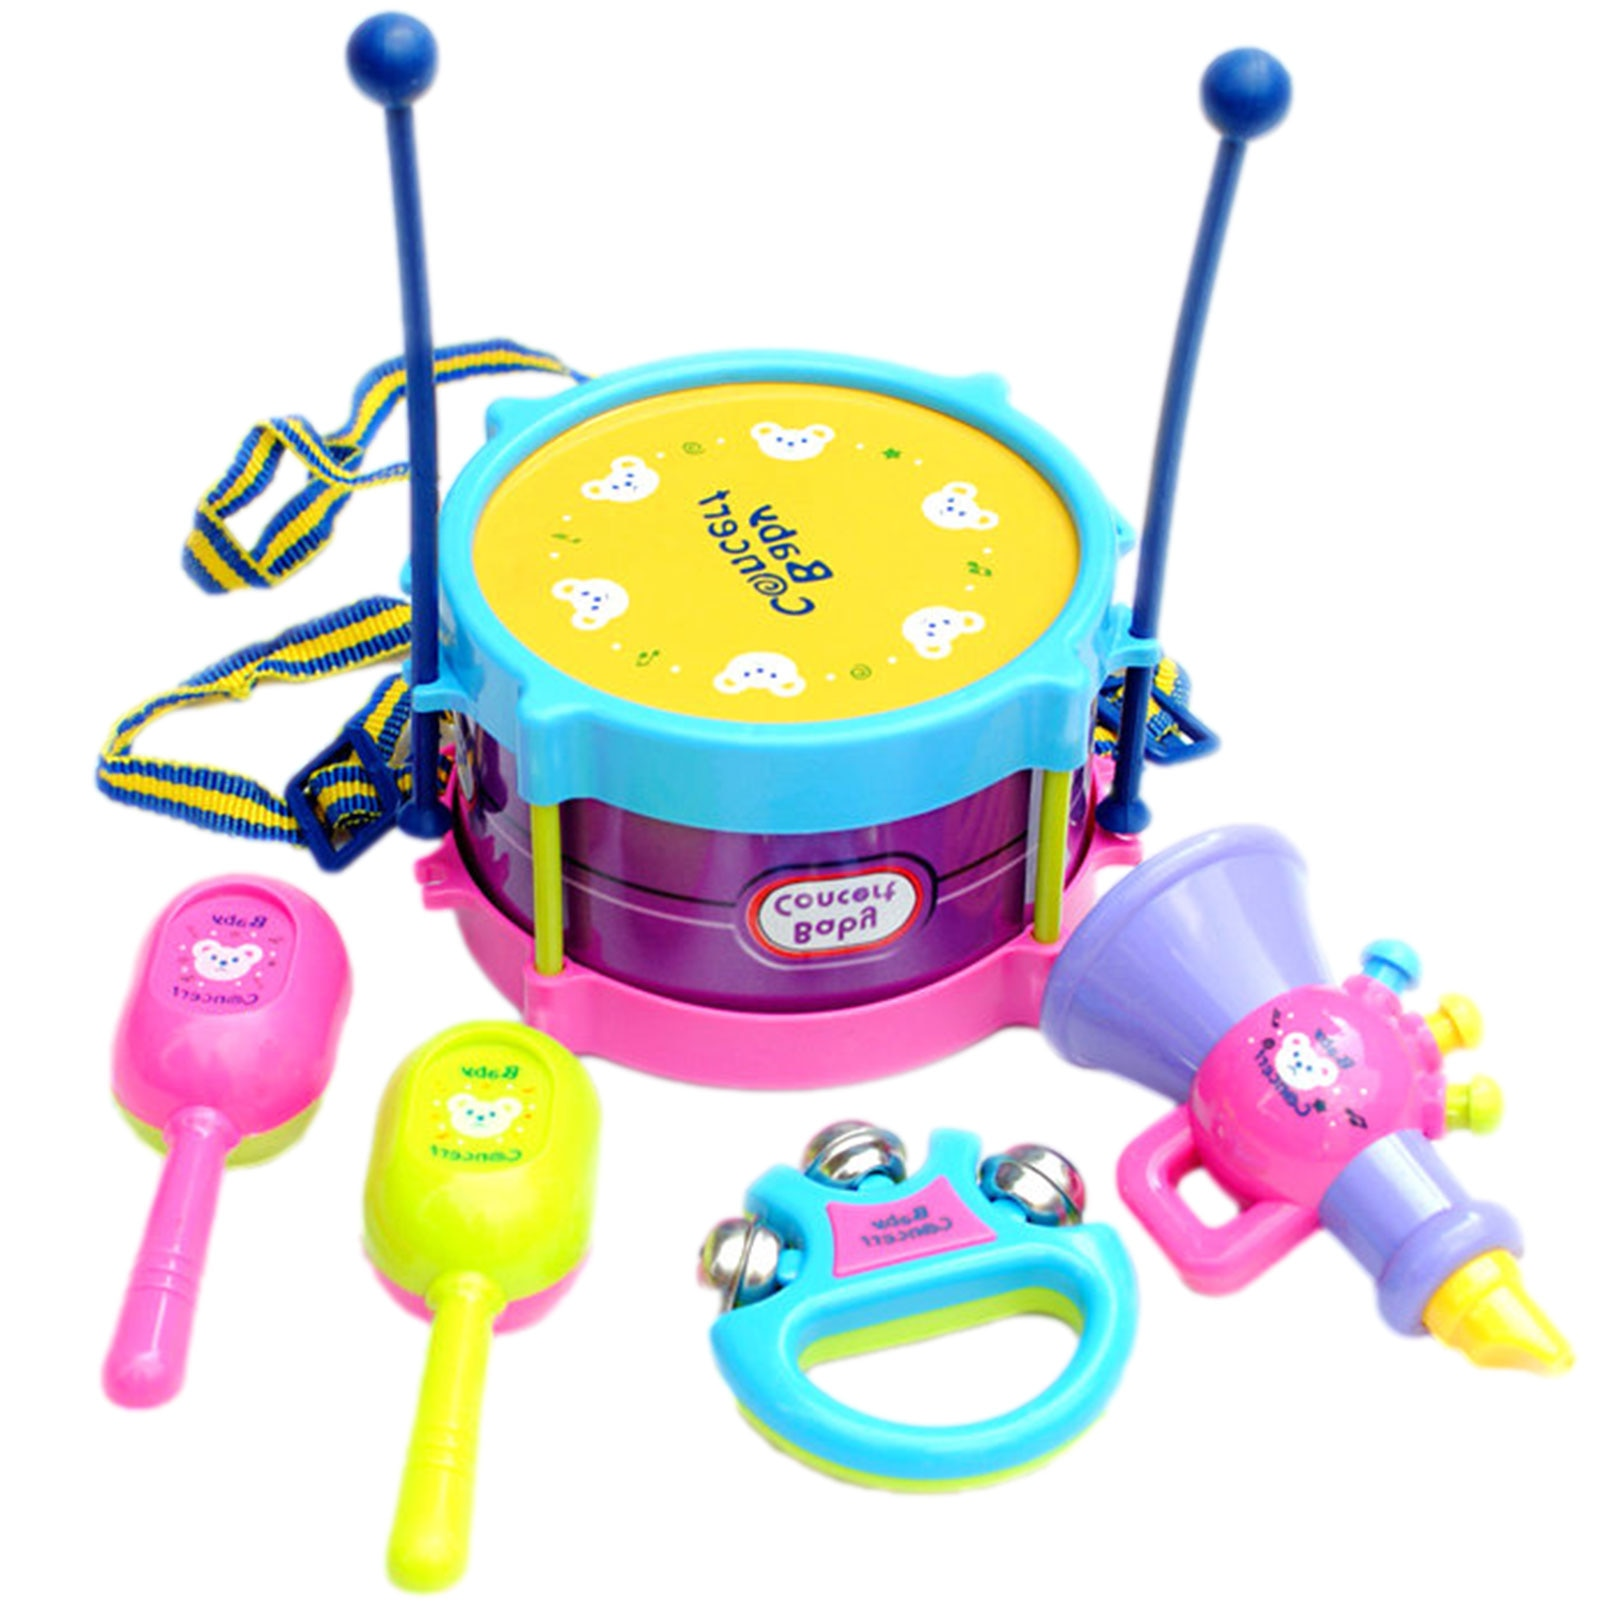 Baby Musical Drum Toy Set Music Toys Hand Drums Children Musical Instruments Kids Enlightenment Early Educational Dynamic Toys neje dg0006 1 mini finger touch drums set musical toy silver black